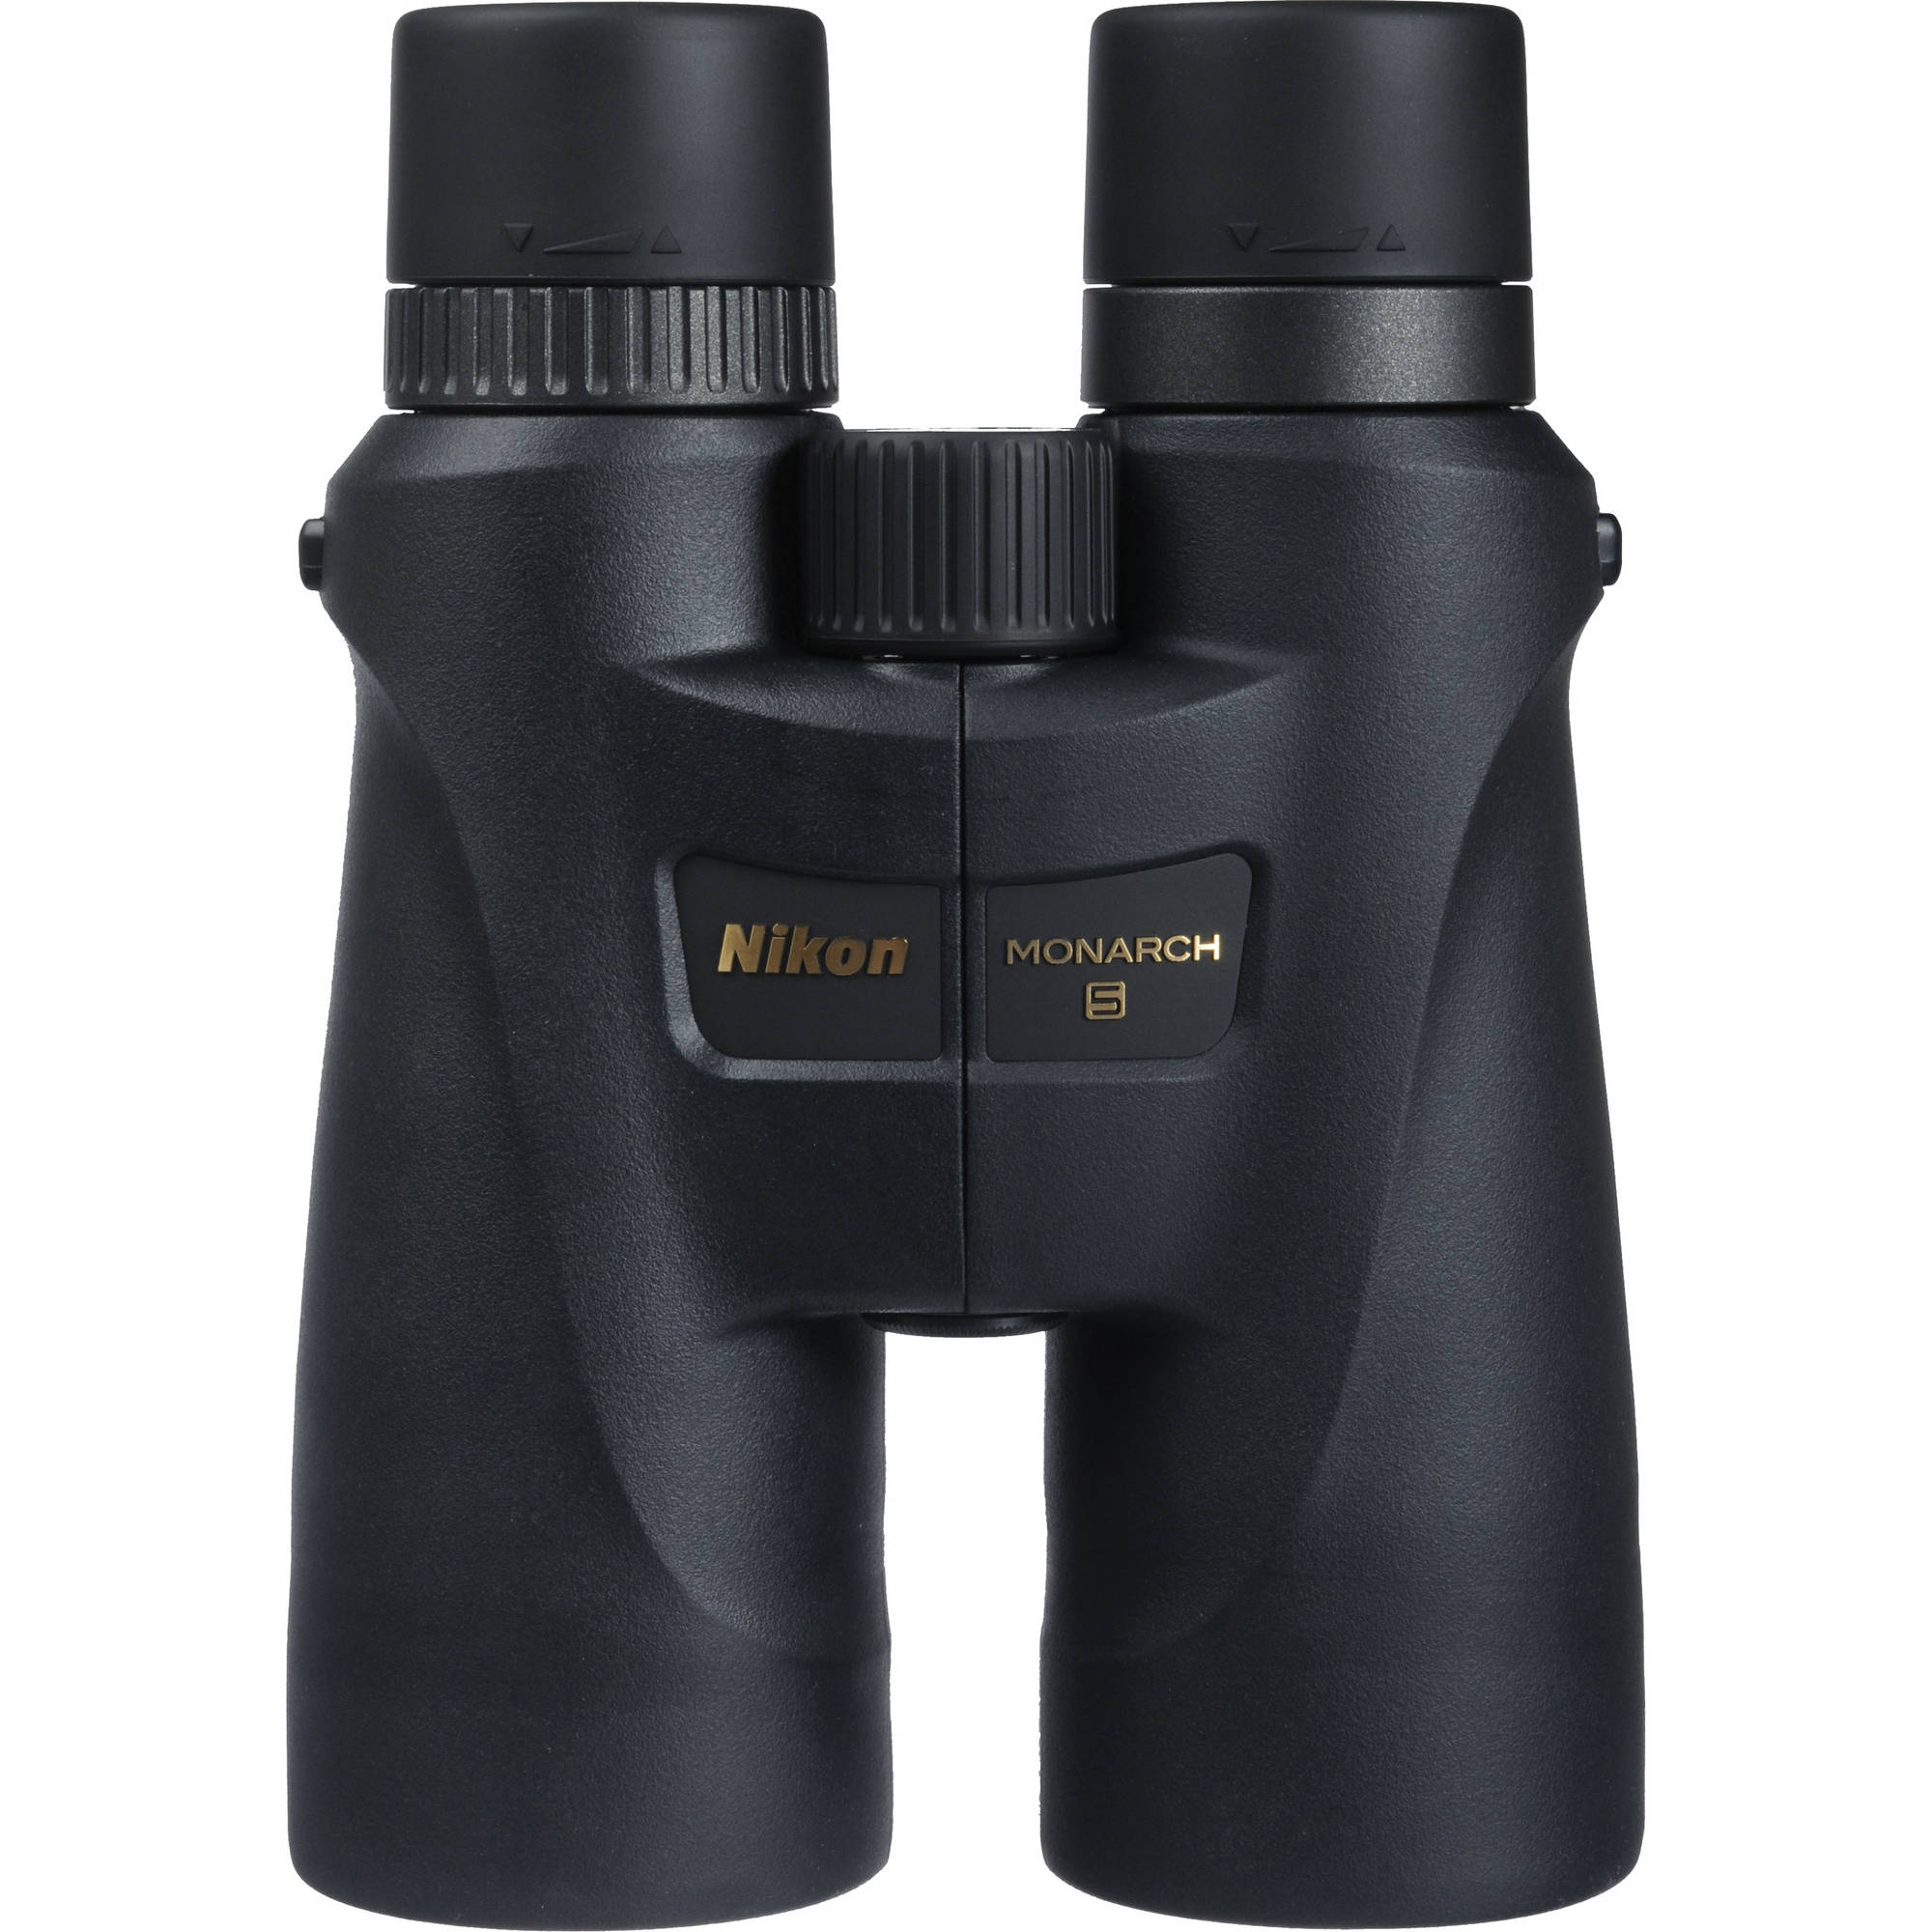 Nikon 16x56 Monarch 5 Binocular (Black)